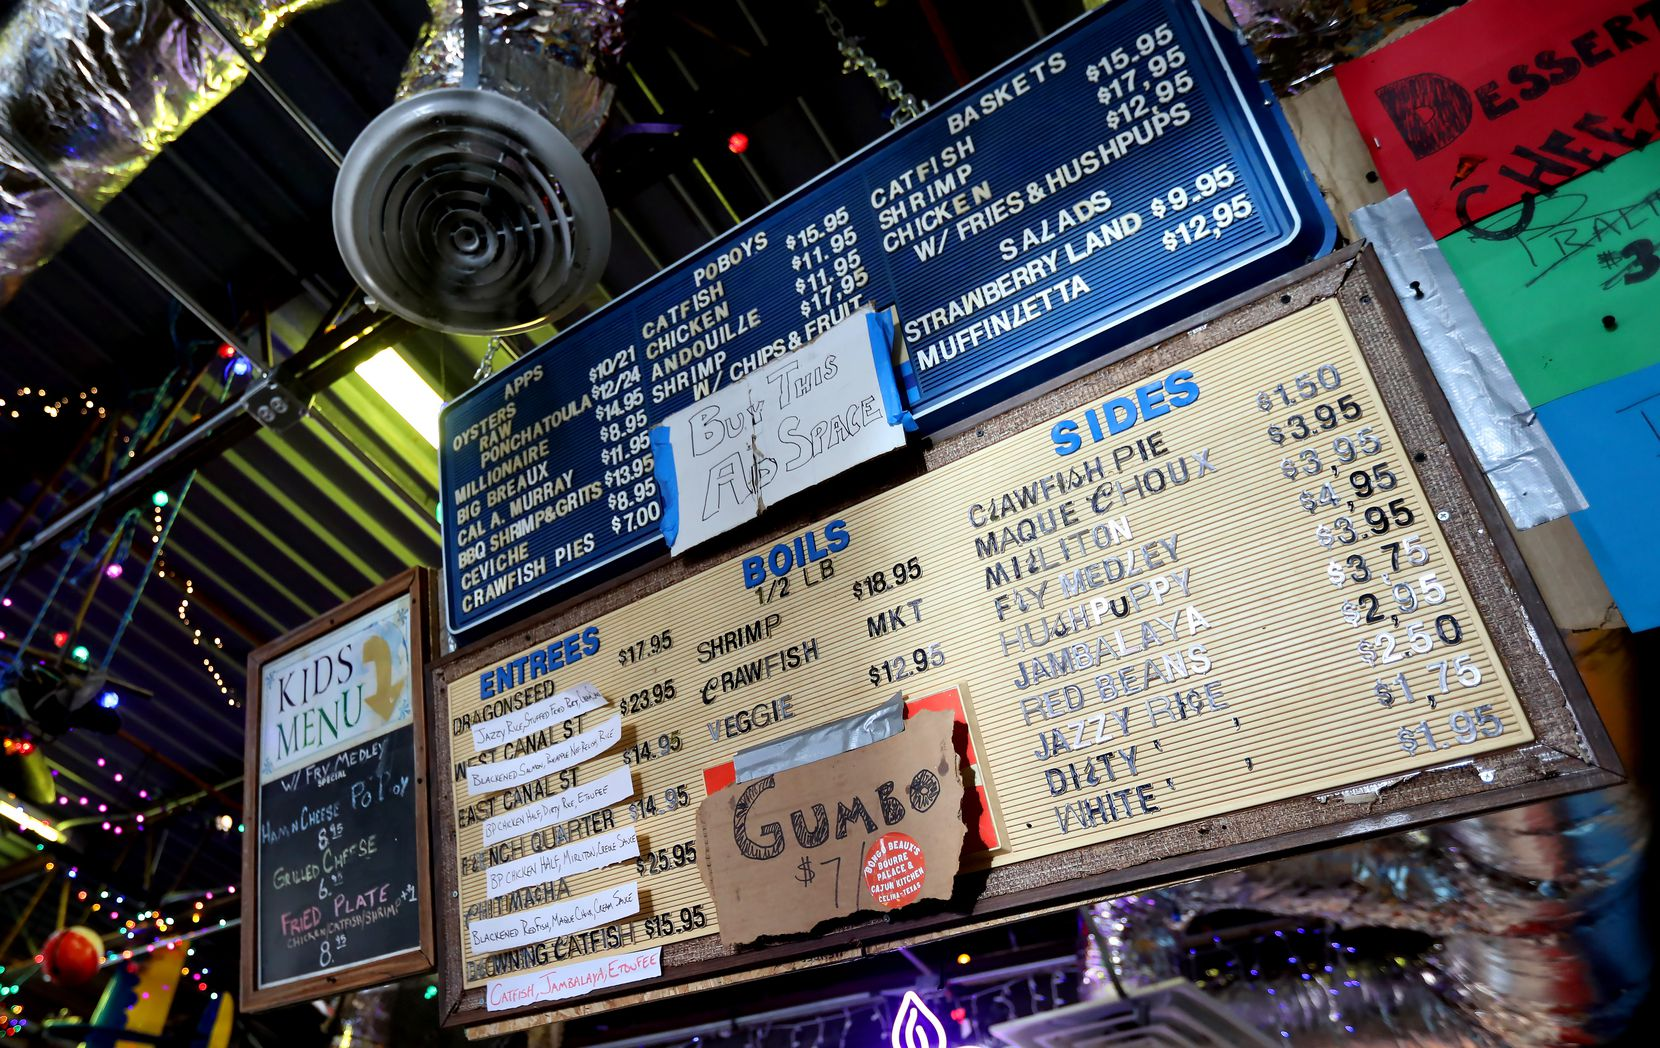 The menu at Bongo Beaux's Bourre Palace & Cajun Kitchen in Celina looks like it's been there forever, but it's actually only been up and serving guests for a few days.